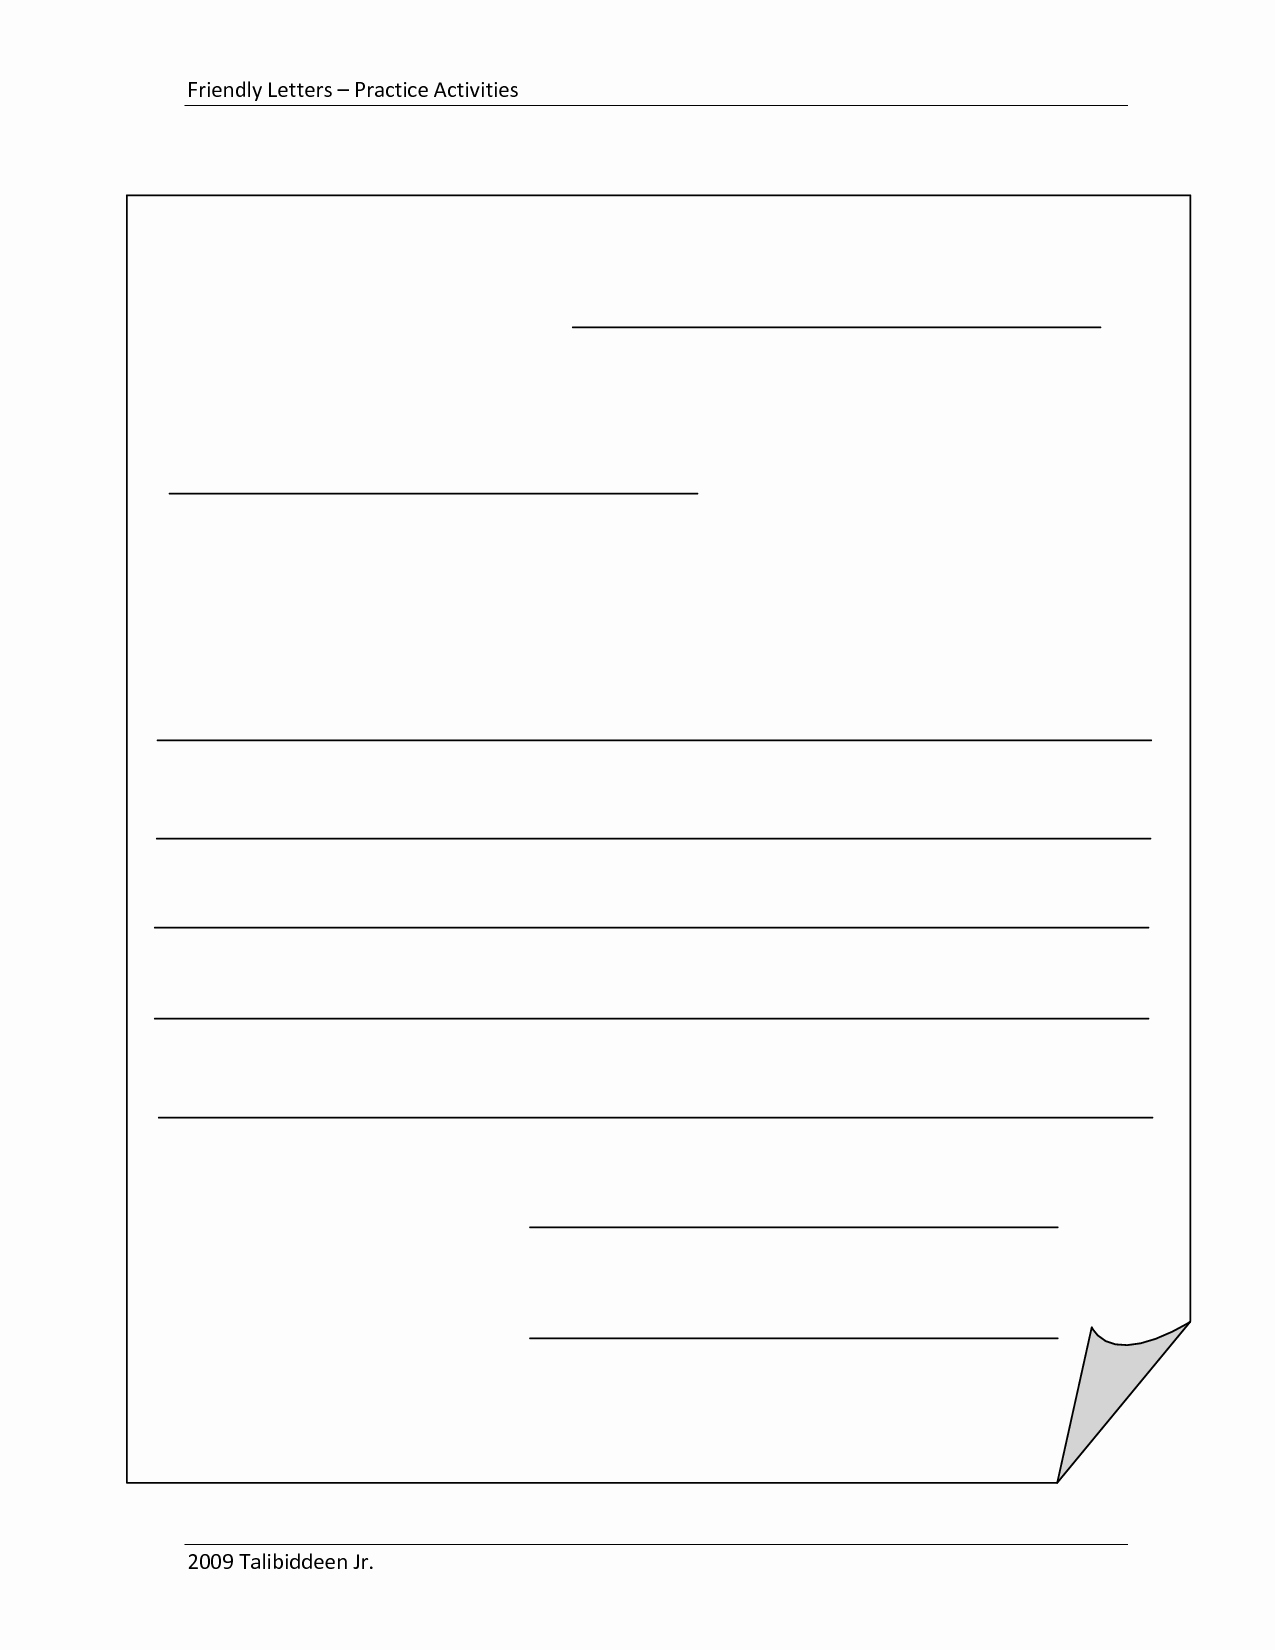 Business Plan Template for Kids Awesome Blank Letter Template for Kids